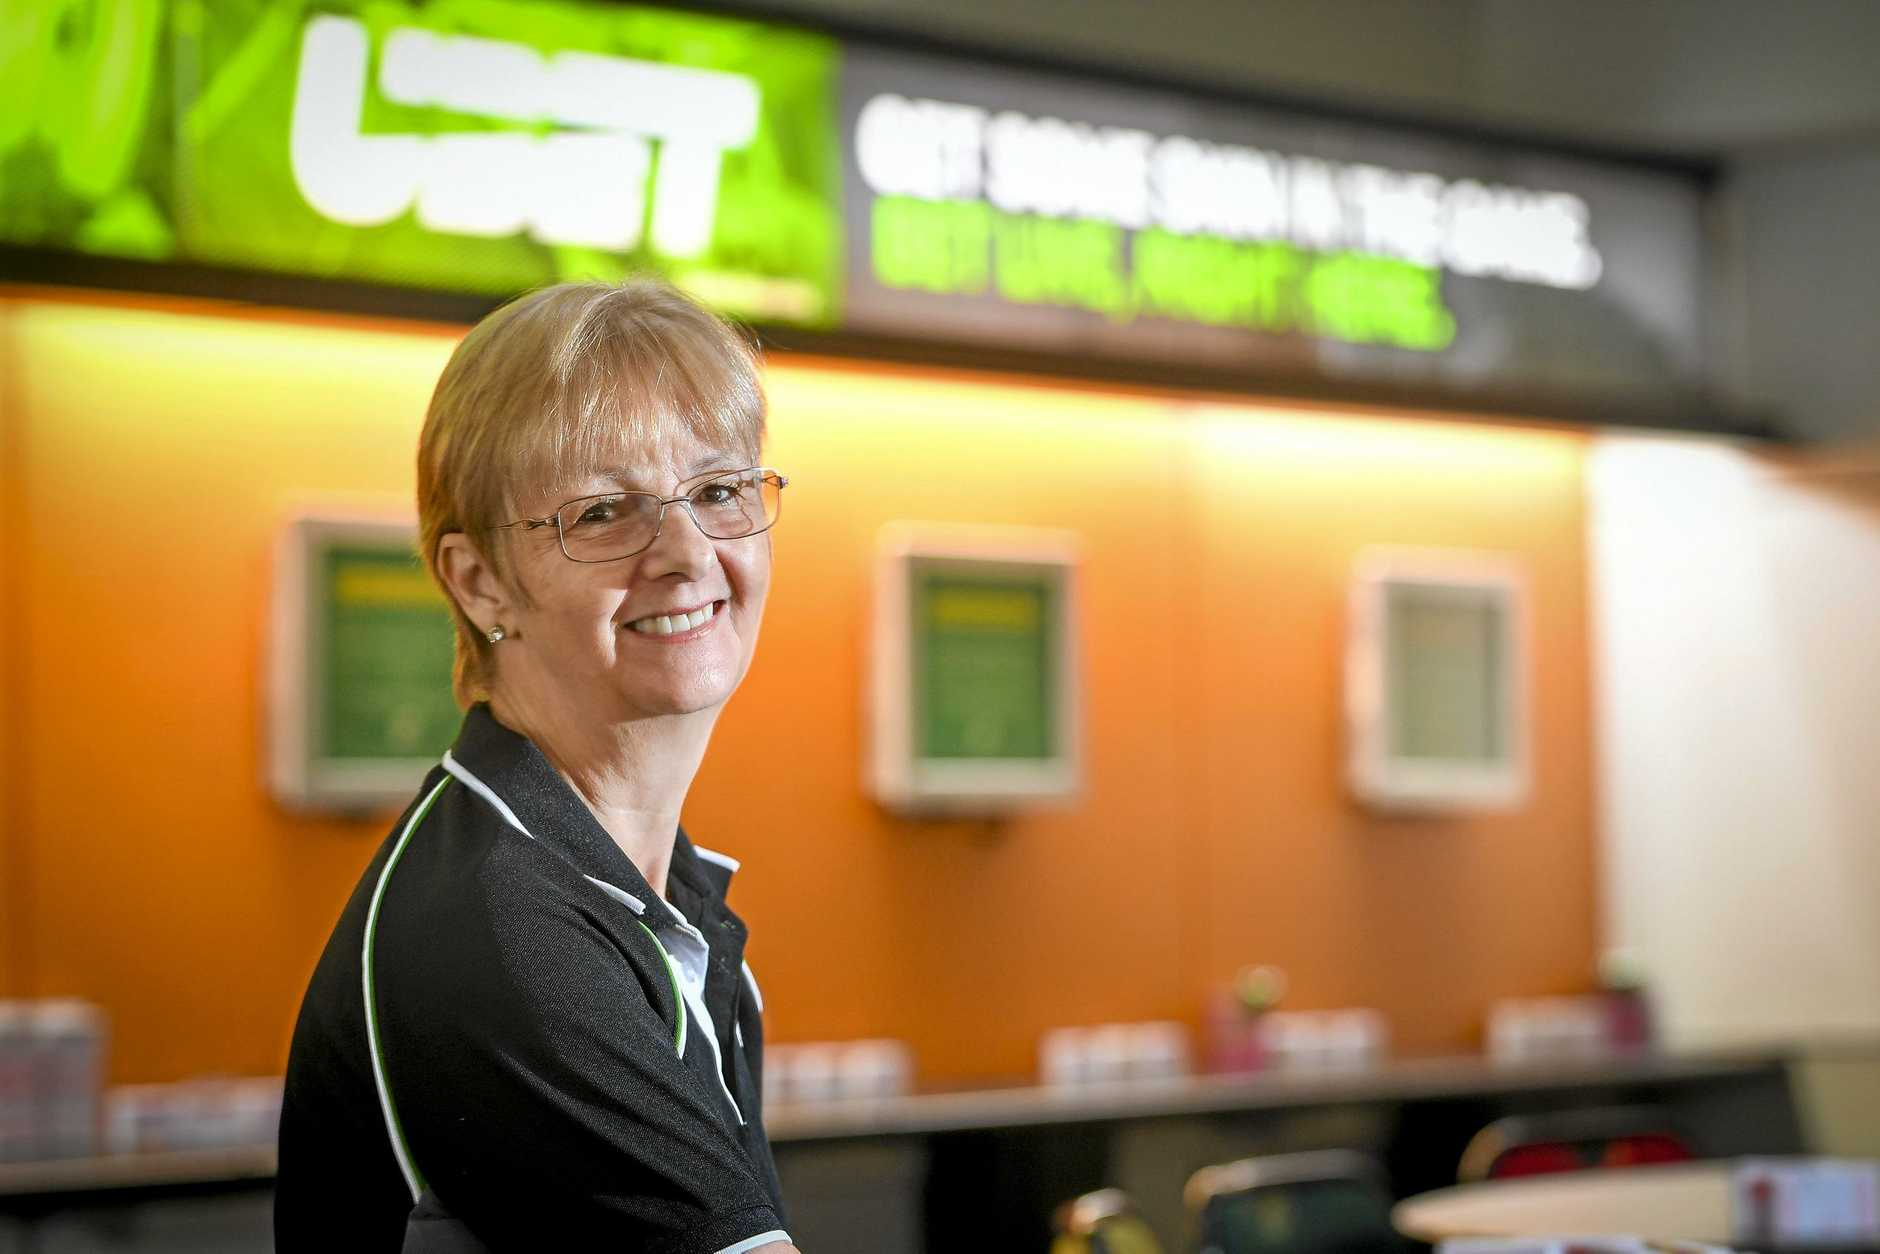 ALL BETS OFF: Alison Harrington has operated Gladstone's Dawson Rd TAB agency since December 1998. She  is sad it will close on May 29 but has many fond  memories.